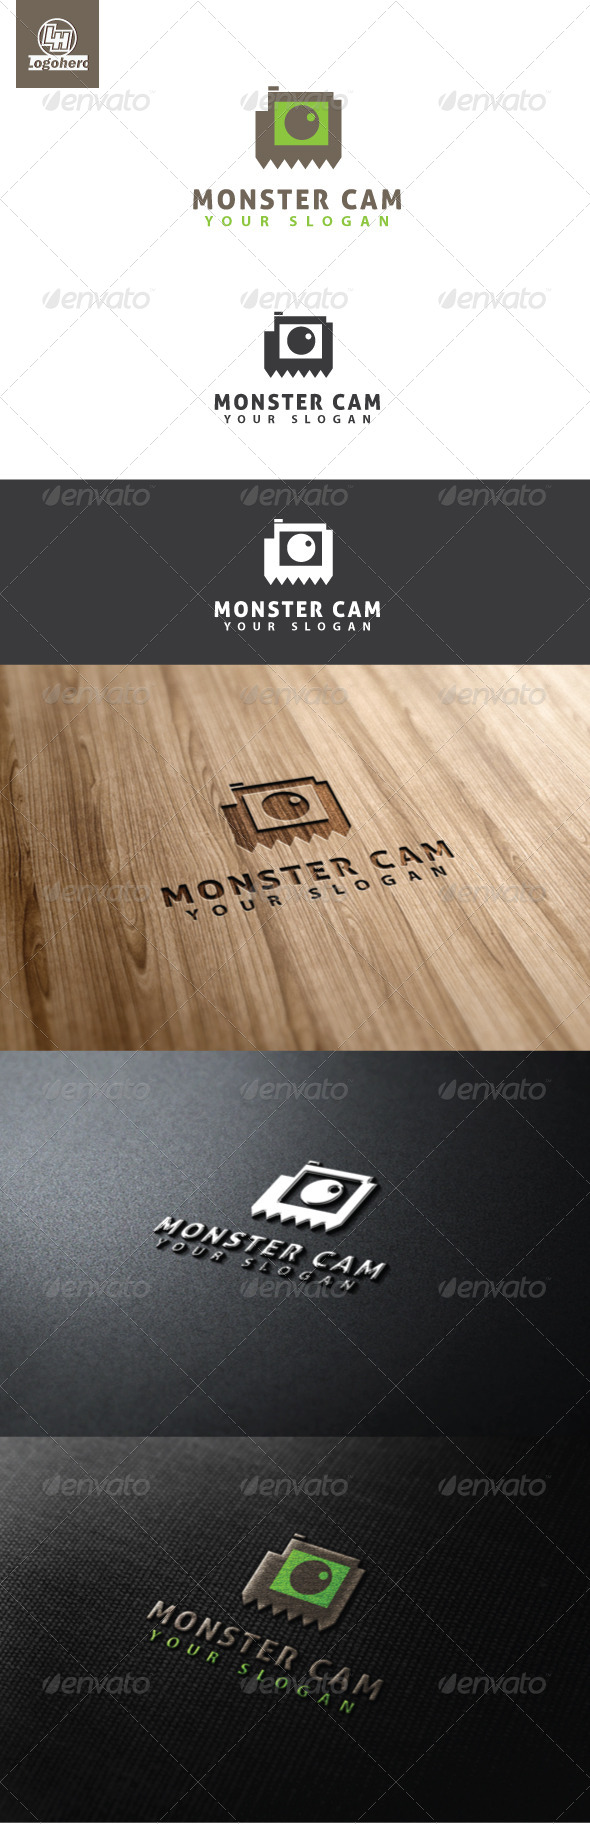 Monster Cam Logo Template